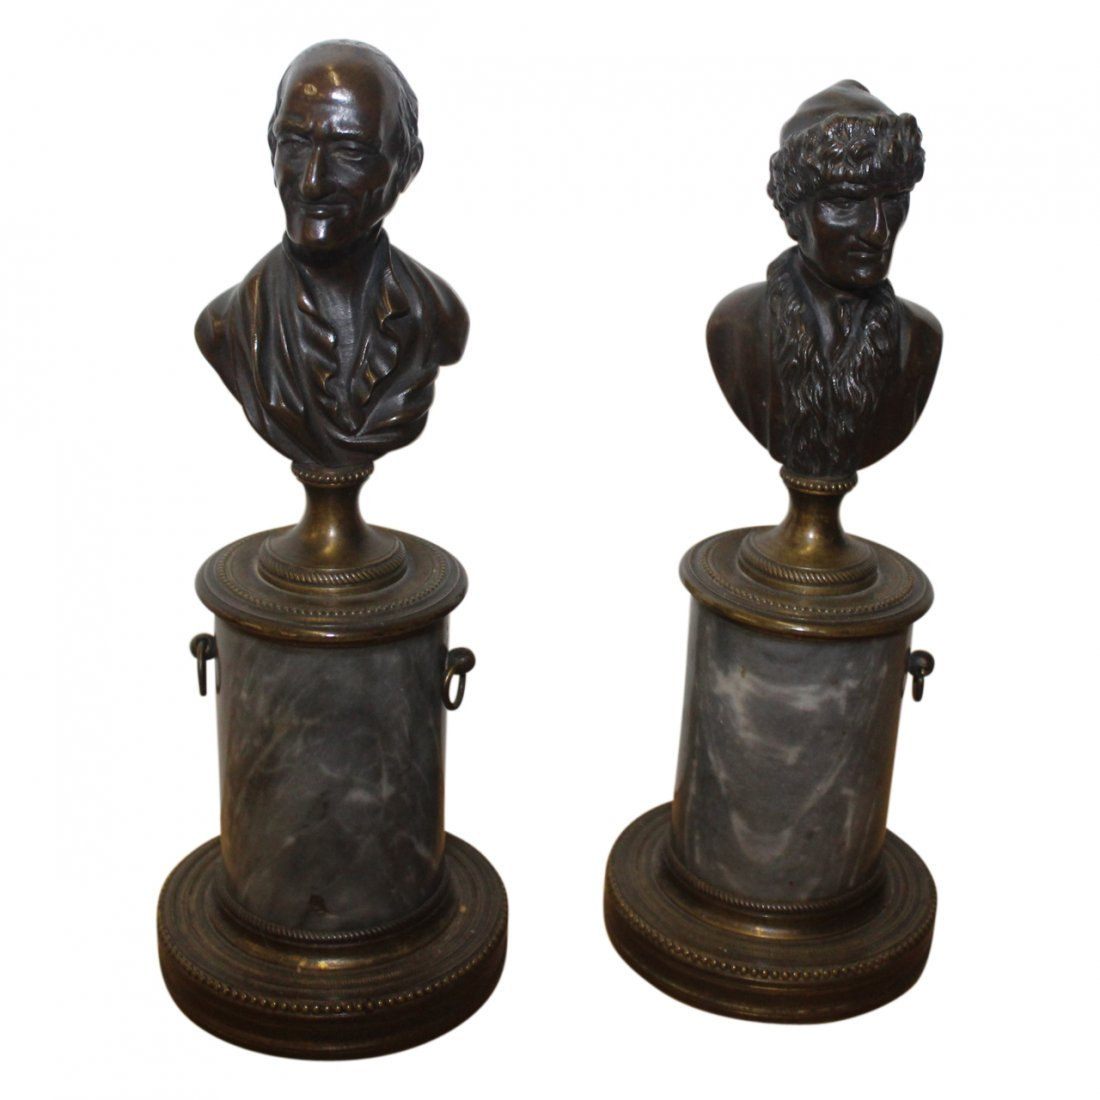 Pair of 19th Century Bronze and Stone Busts